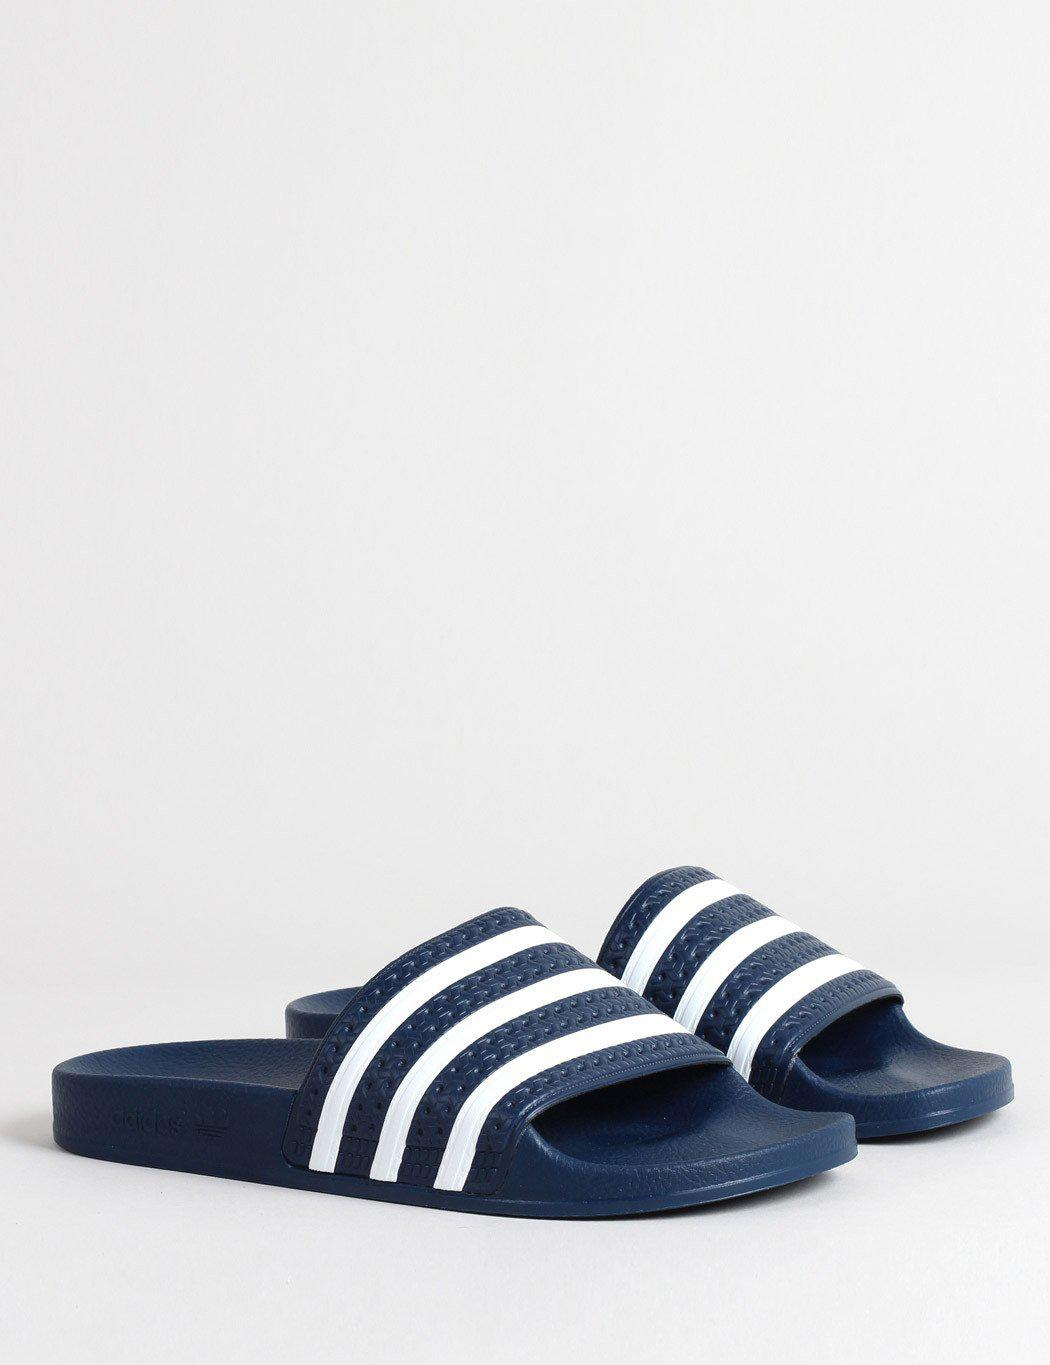 a7ae5684a49c Lyst - adidas Originals Adidas Adilette Slides (288022) in Blue for Men -  Save 45%